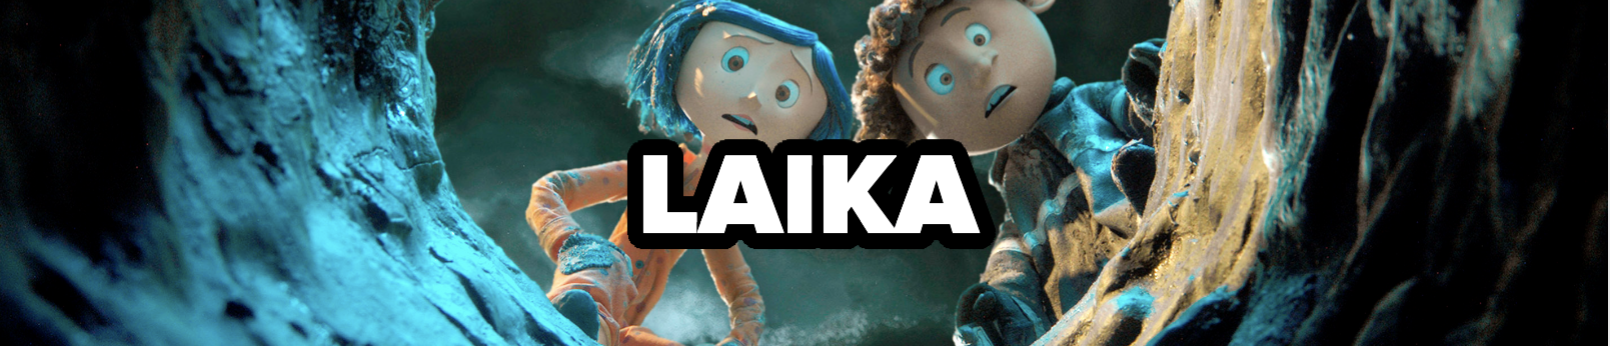 LAIKA, with Coraline and Wybie in the background